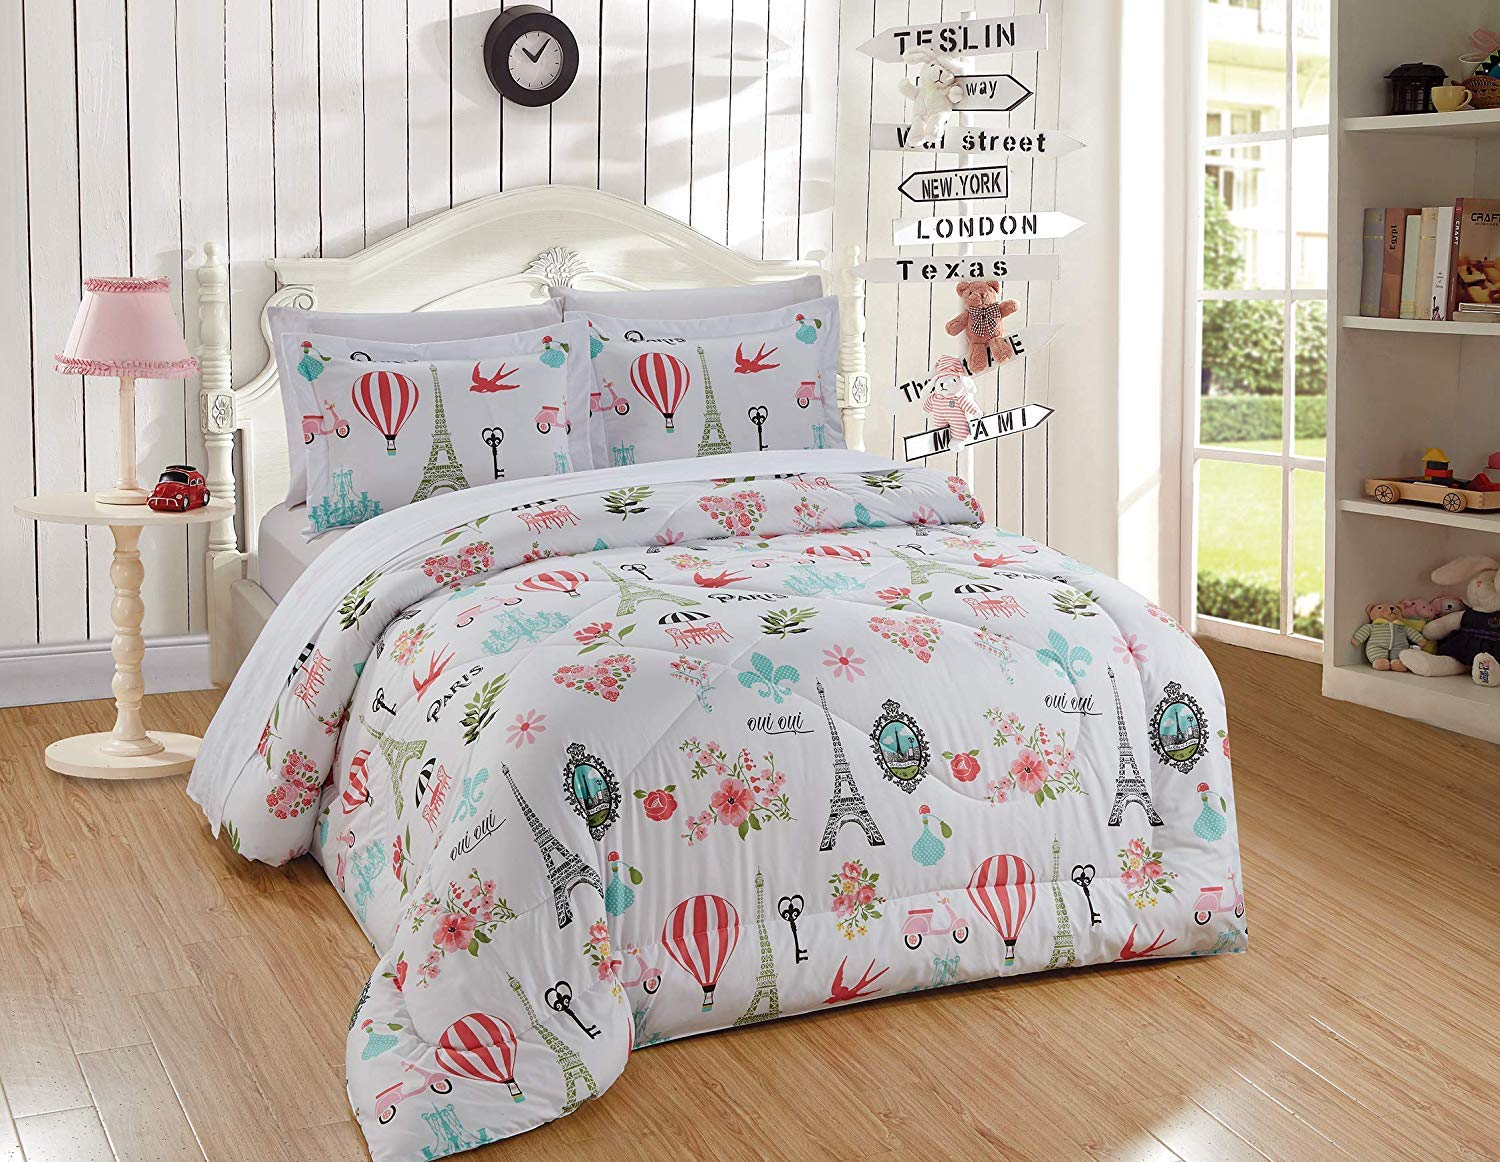 Luxury Home Collection Kids/Teens/Girls 5 Piece Twin Size Comforter Bedding Set/Bed in A Bag with Sheets Multicolor Floral Hearts Paris Eiffel Tower Flowers Pink White Turquoise Green Yellow Black